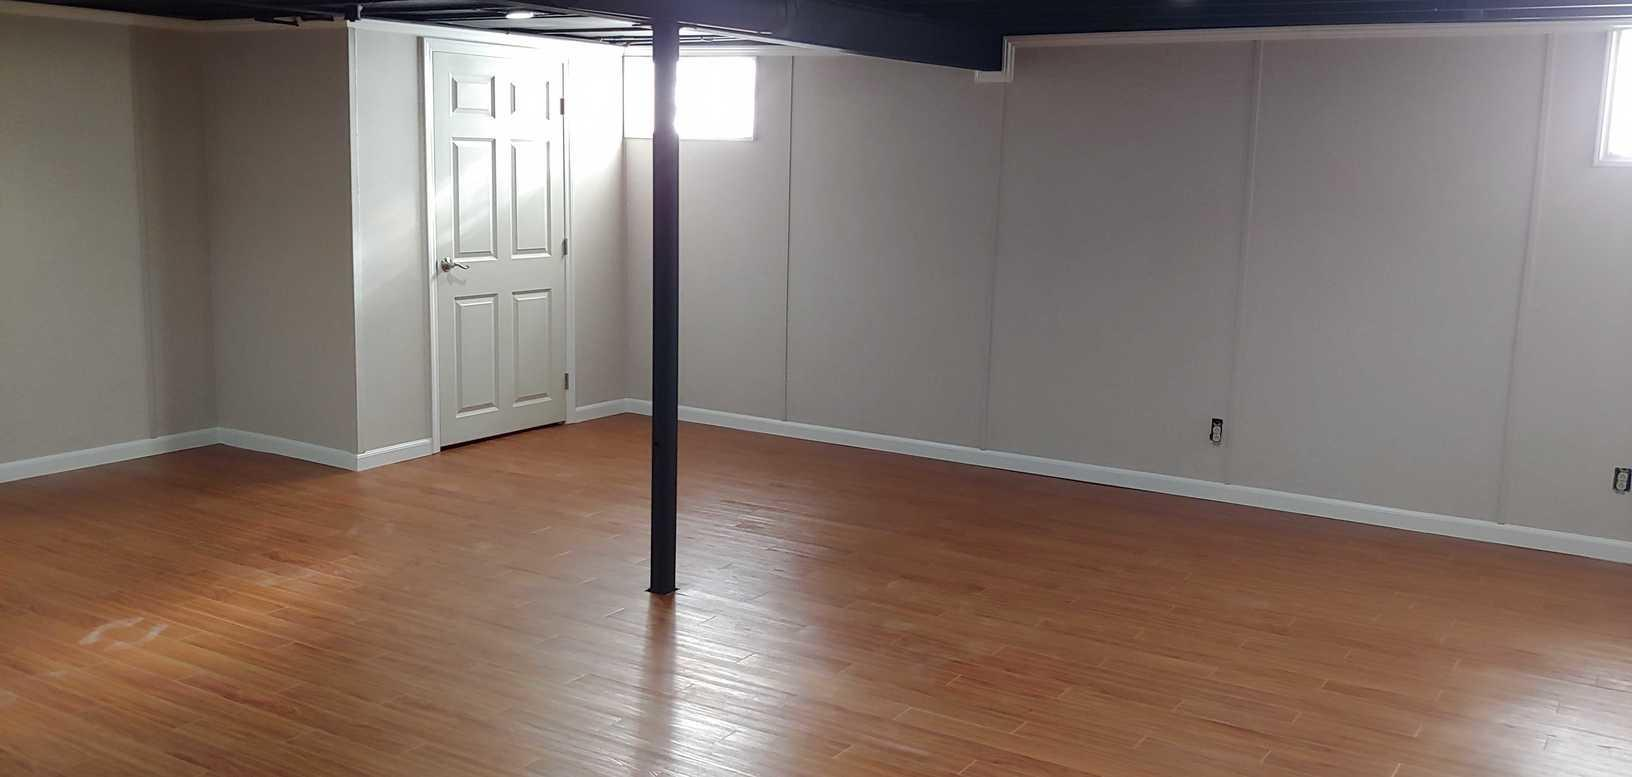 A Fresh, New Living Space in Elma Center, NY - After Photo